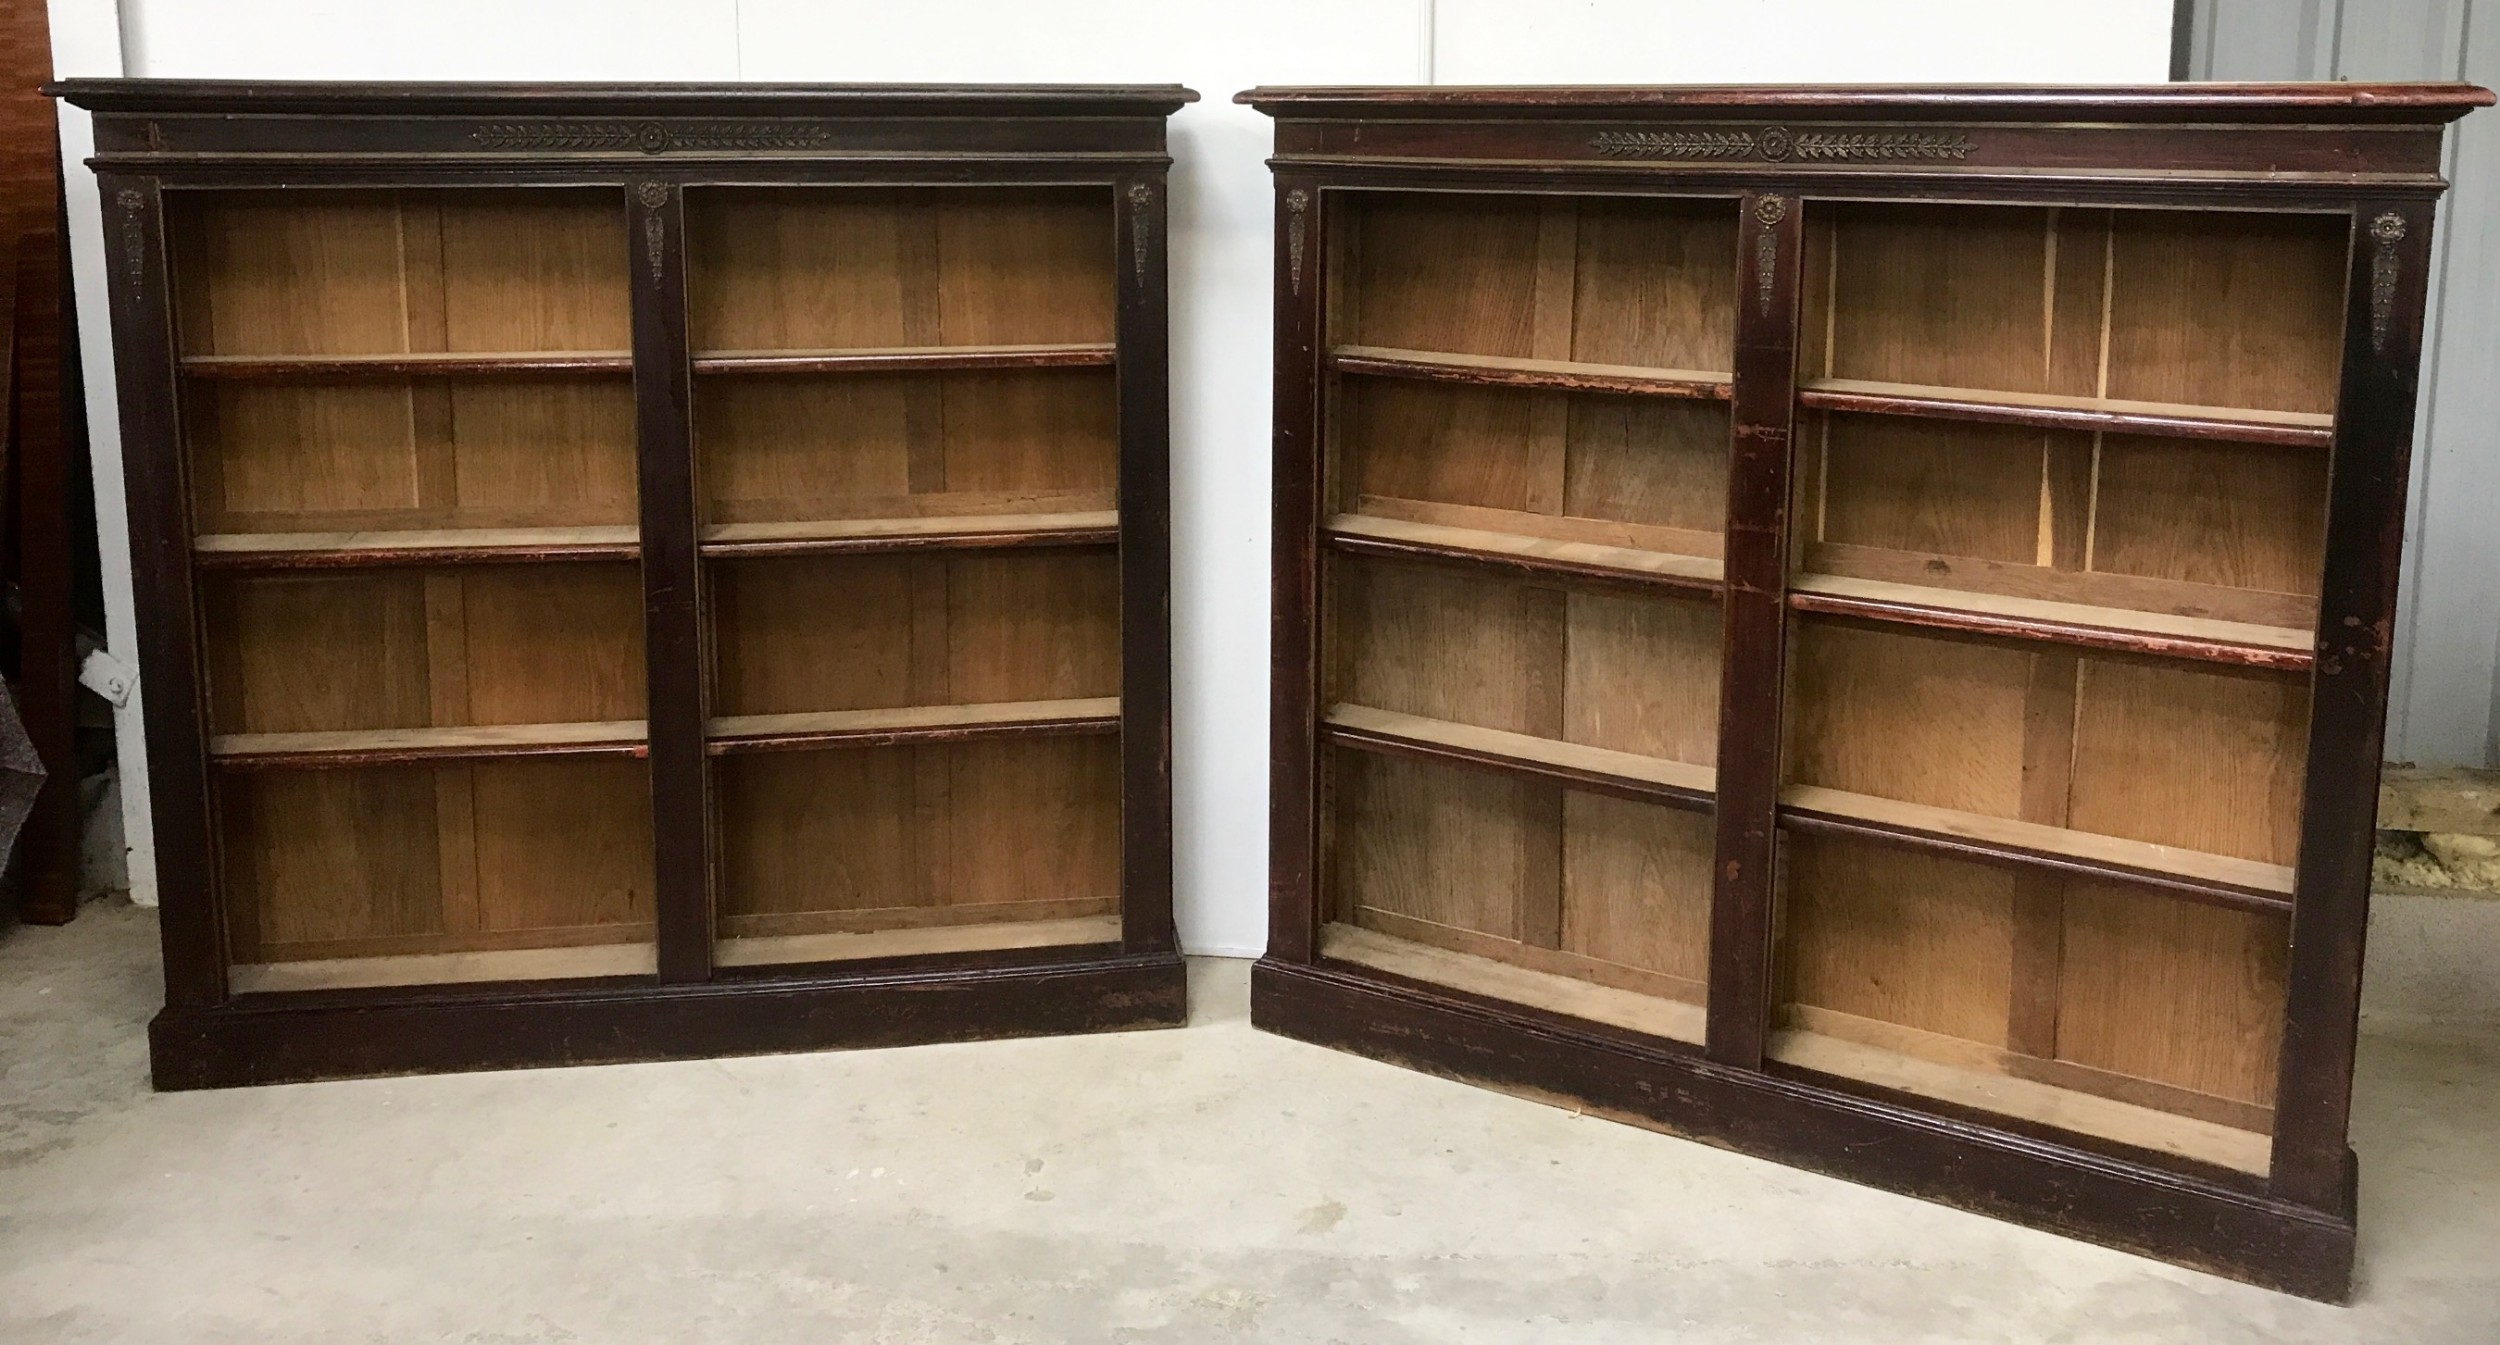 a pair of open bookcases